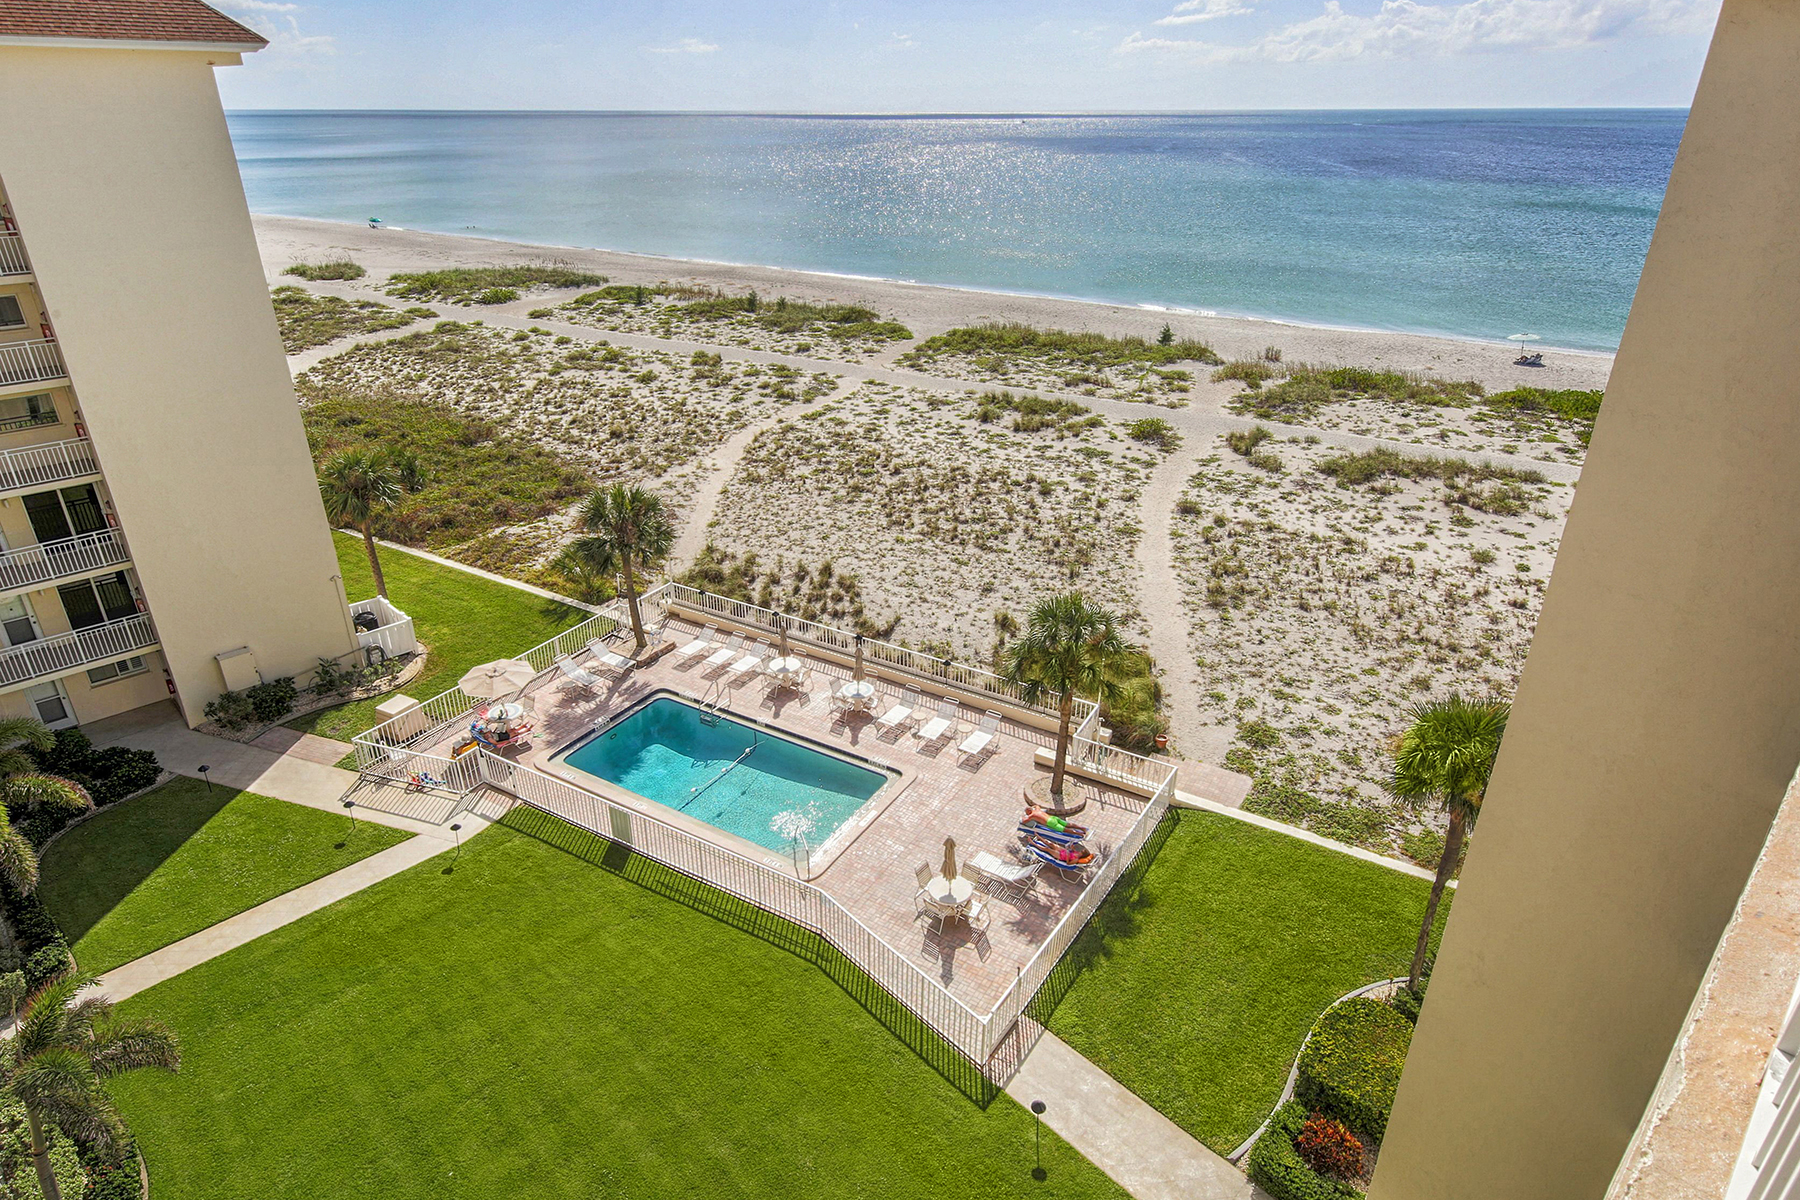 Condominium for Sale at THE TOWERS - VENICE ISLAND 1150 Tarpon Center Dr 702 Venice, Florida, 34285 United States